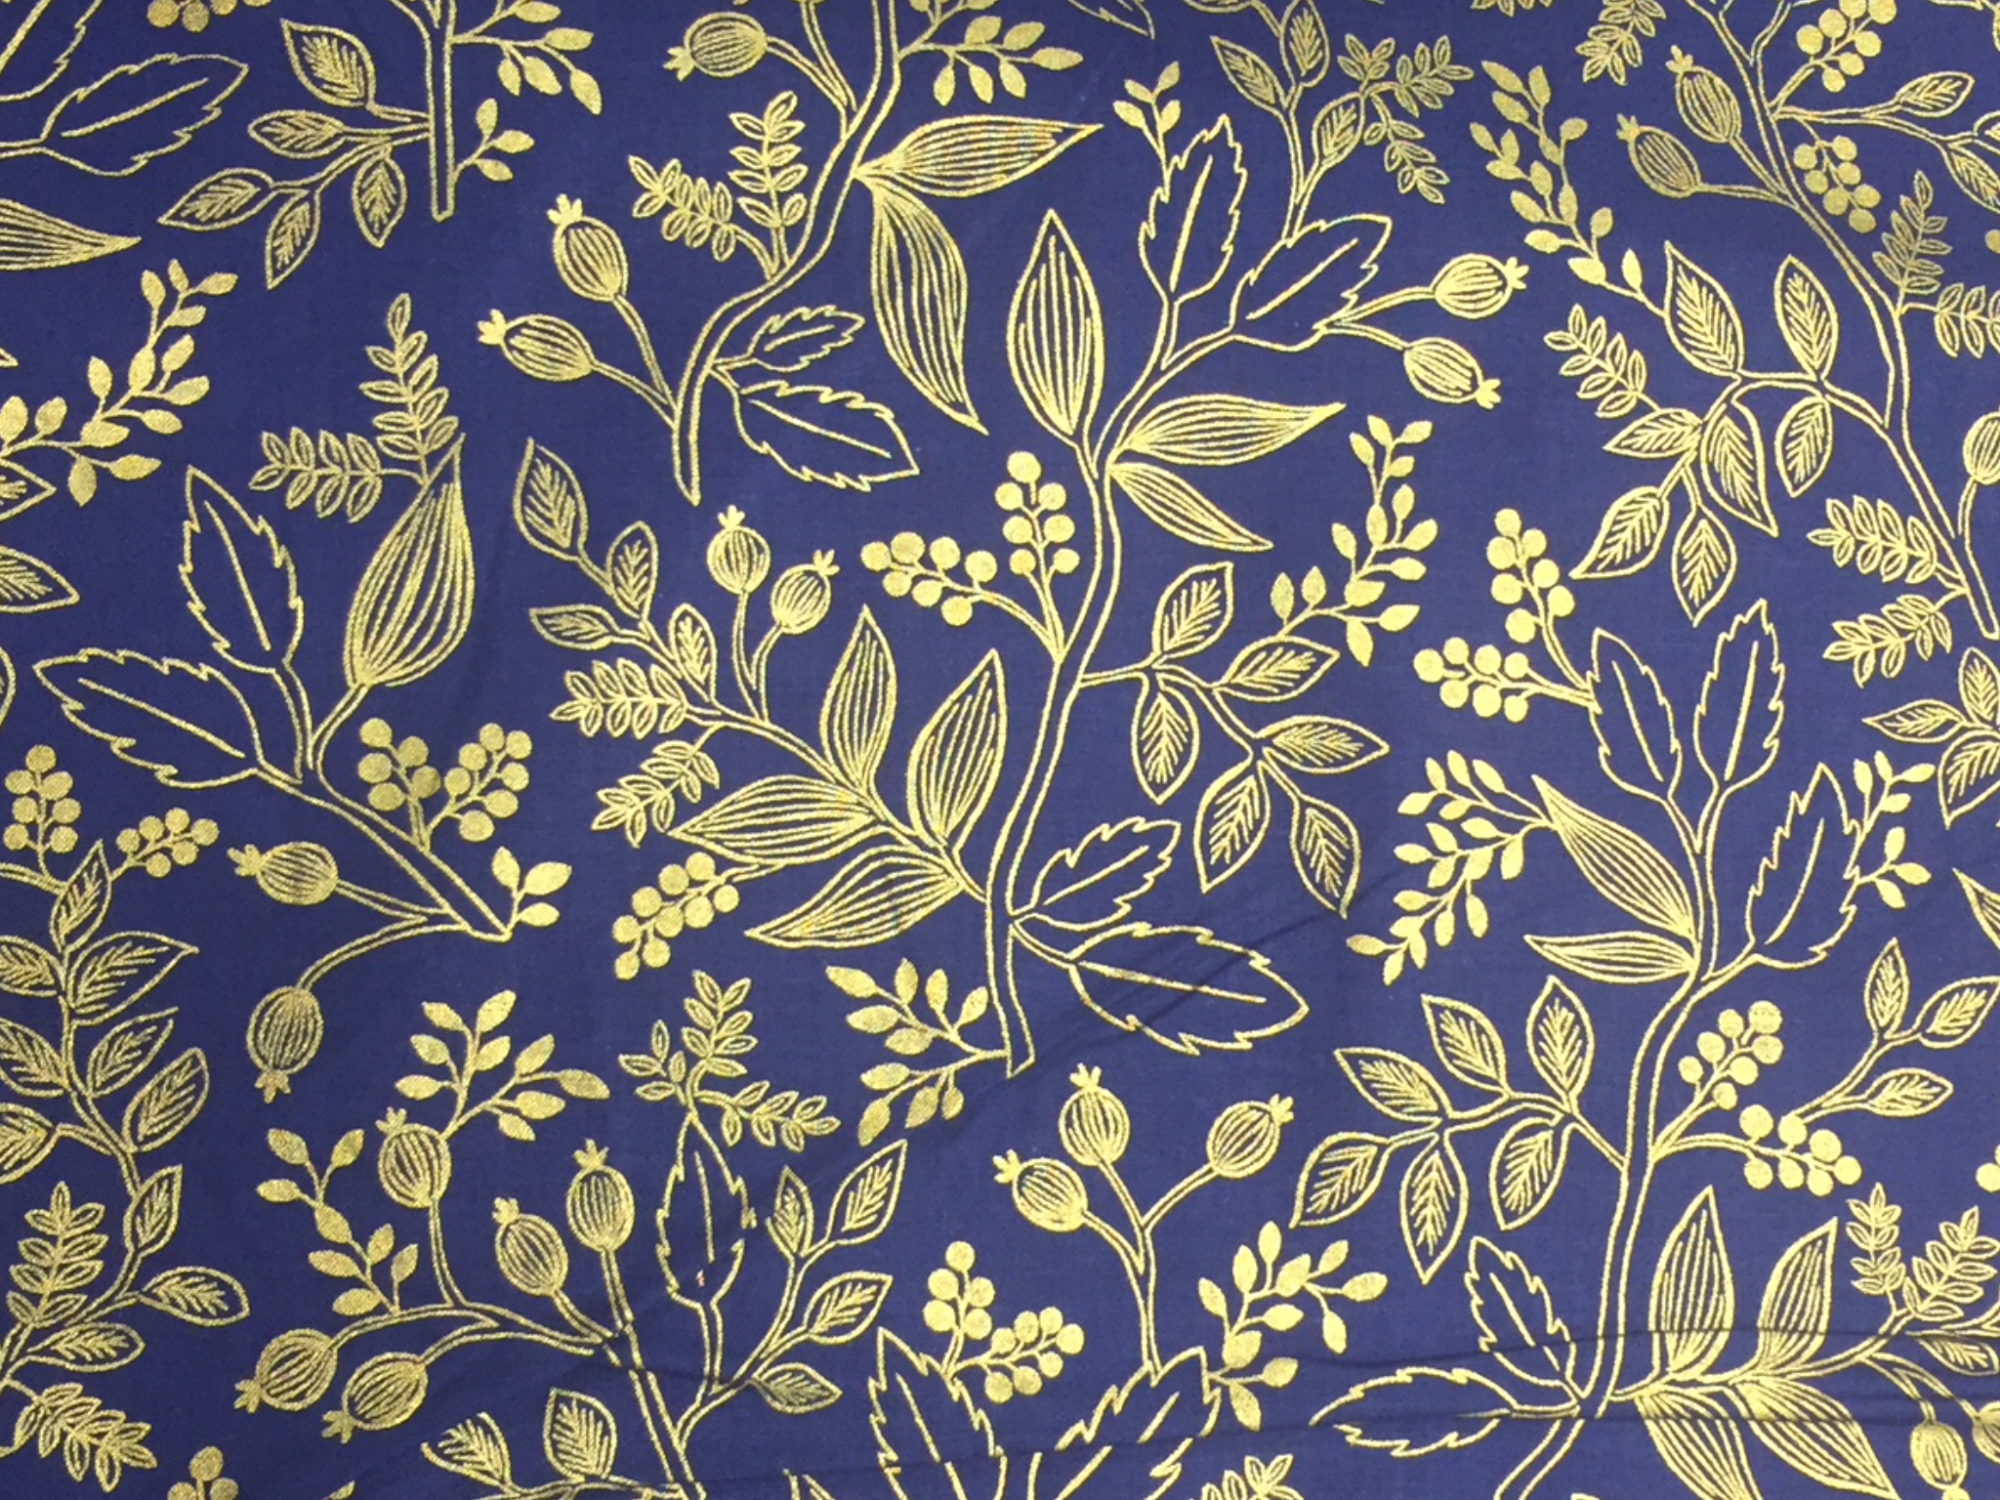 BACKORDERED Cotton + Steel Rifle Paper Company Les Fleurs  Queen Anne Navy Cotton Fabric